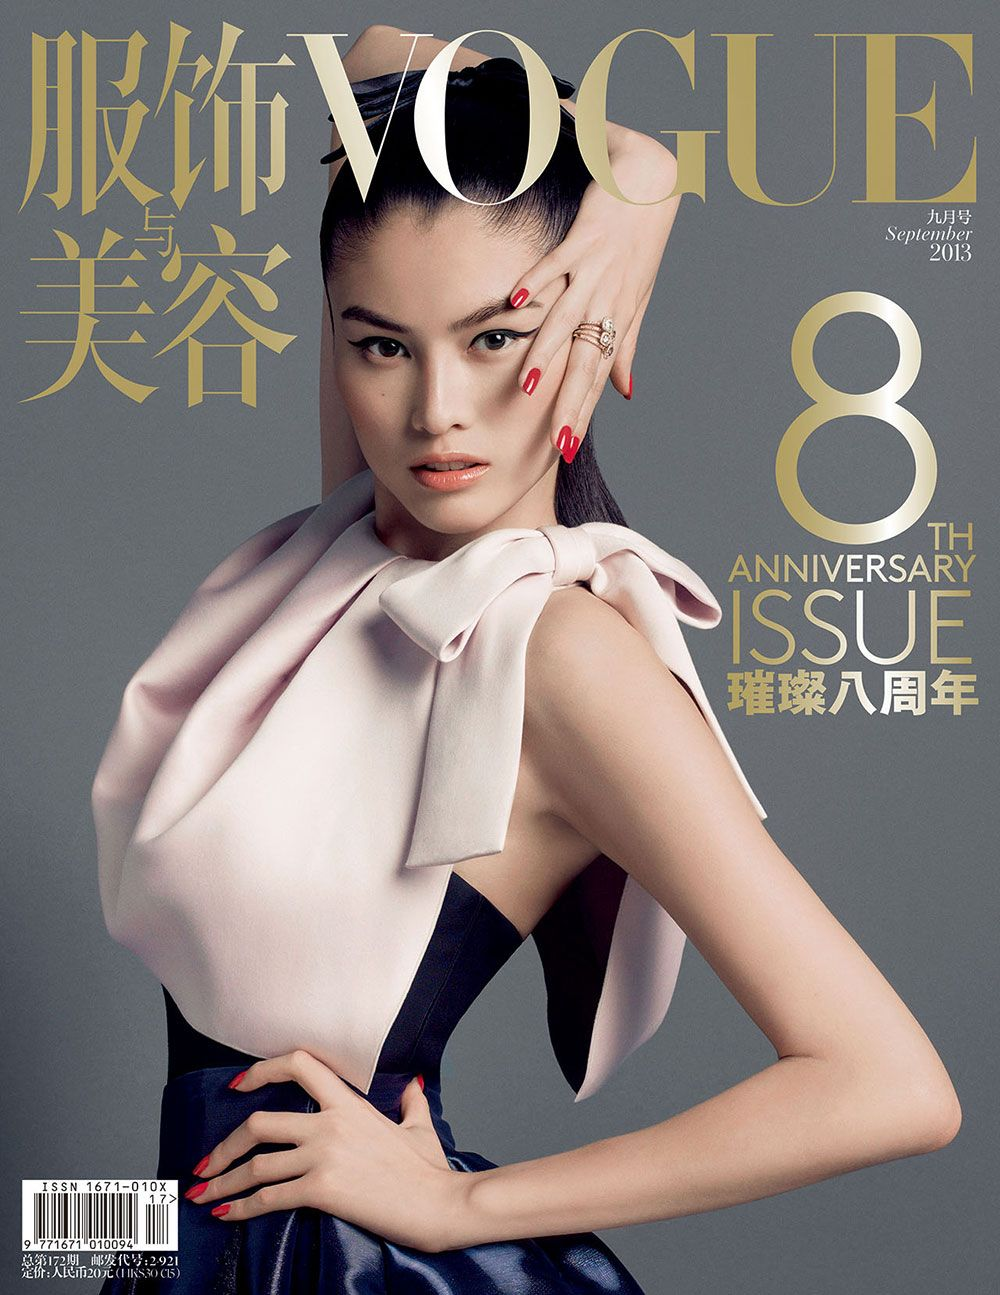 Vogue China celebra 8 anos com 8 capas: Vogue China September 2013 cover